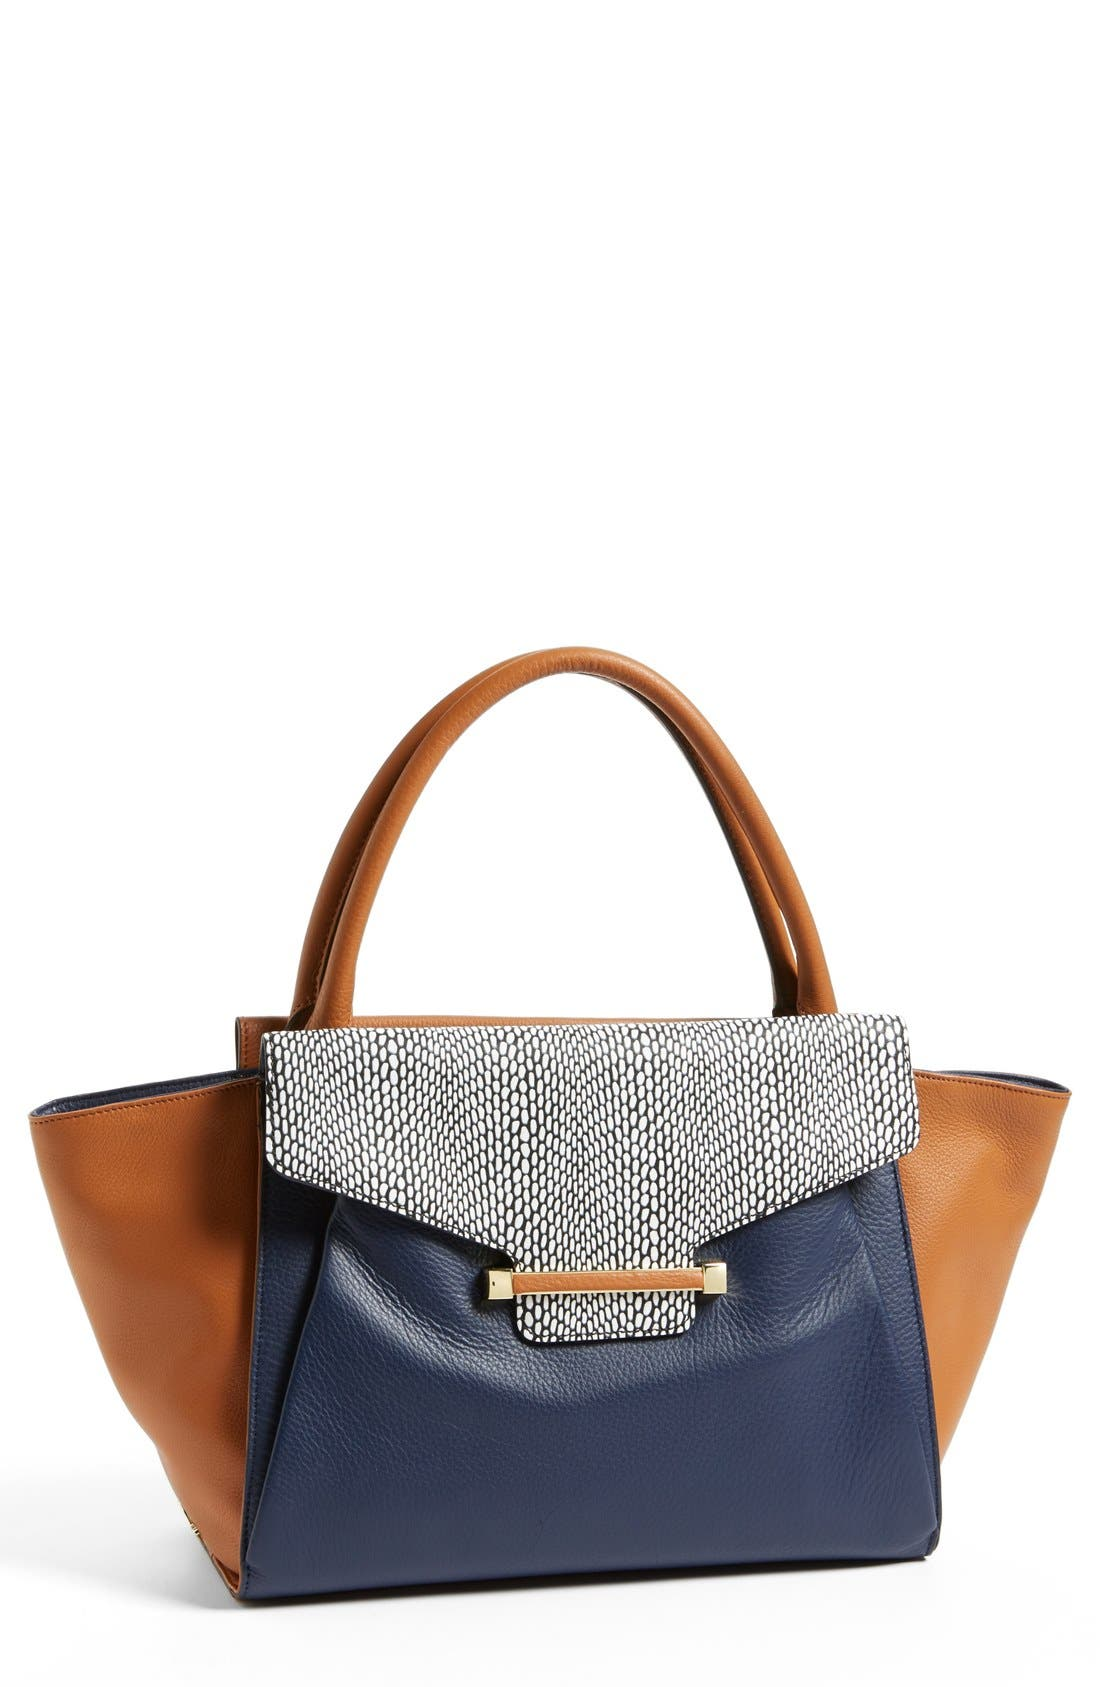 Alternate Image 1 Selected - Vince Camuto 'Julia' Satchel